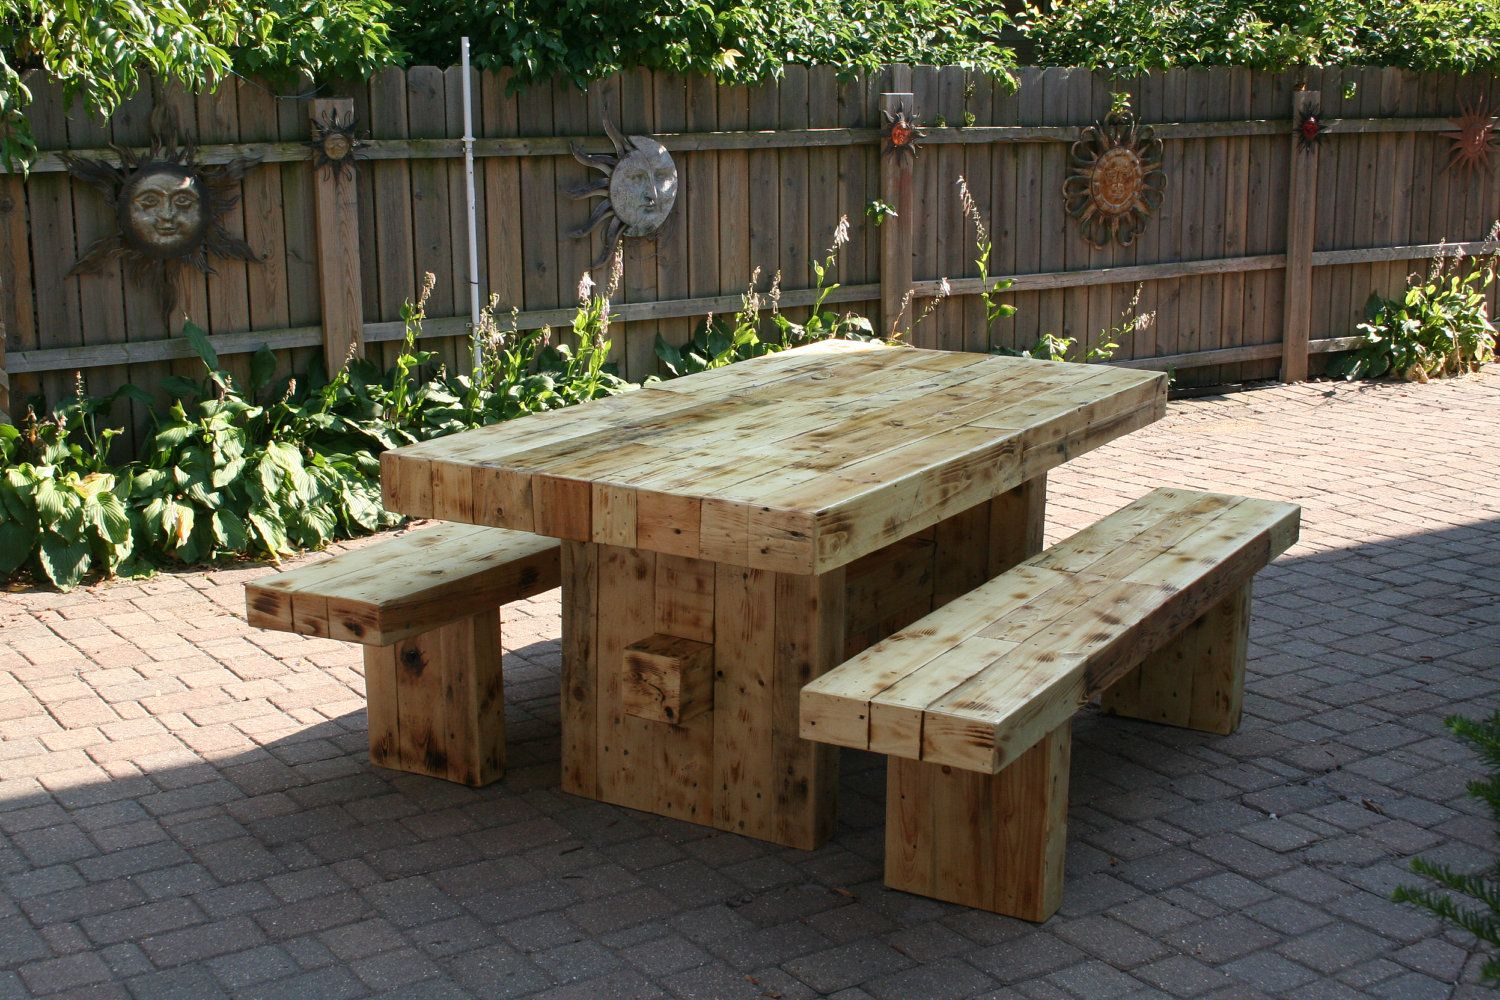 Rustic Wooden Garden Table And Chairs Feels Free To Follow Us In 2020 With Images Rustic Outdoor Furniture Rustic Patio Wooden Garden Table